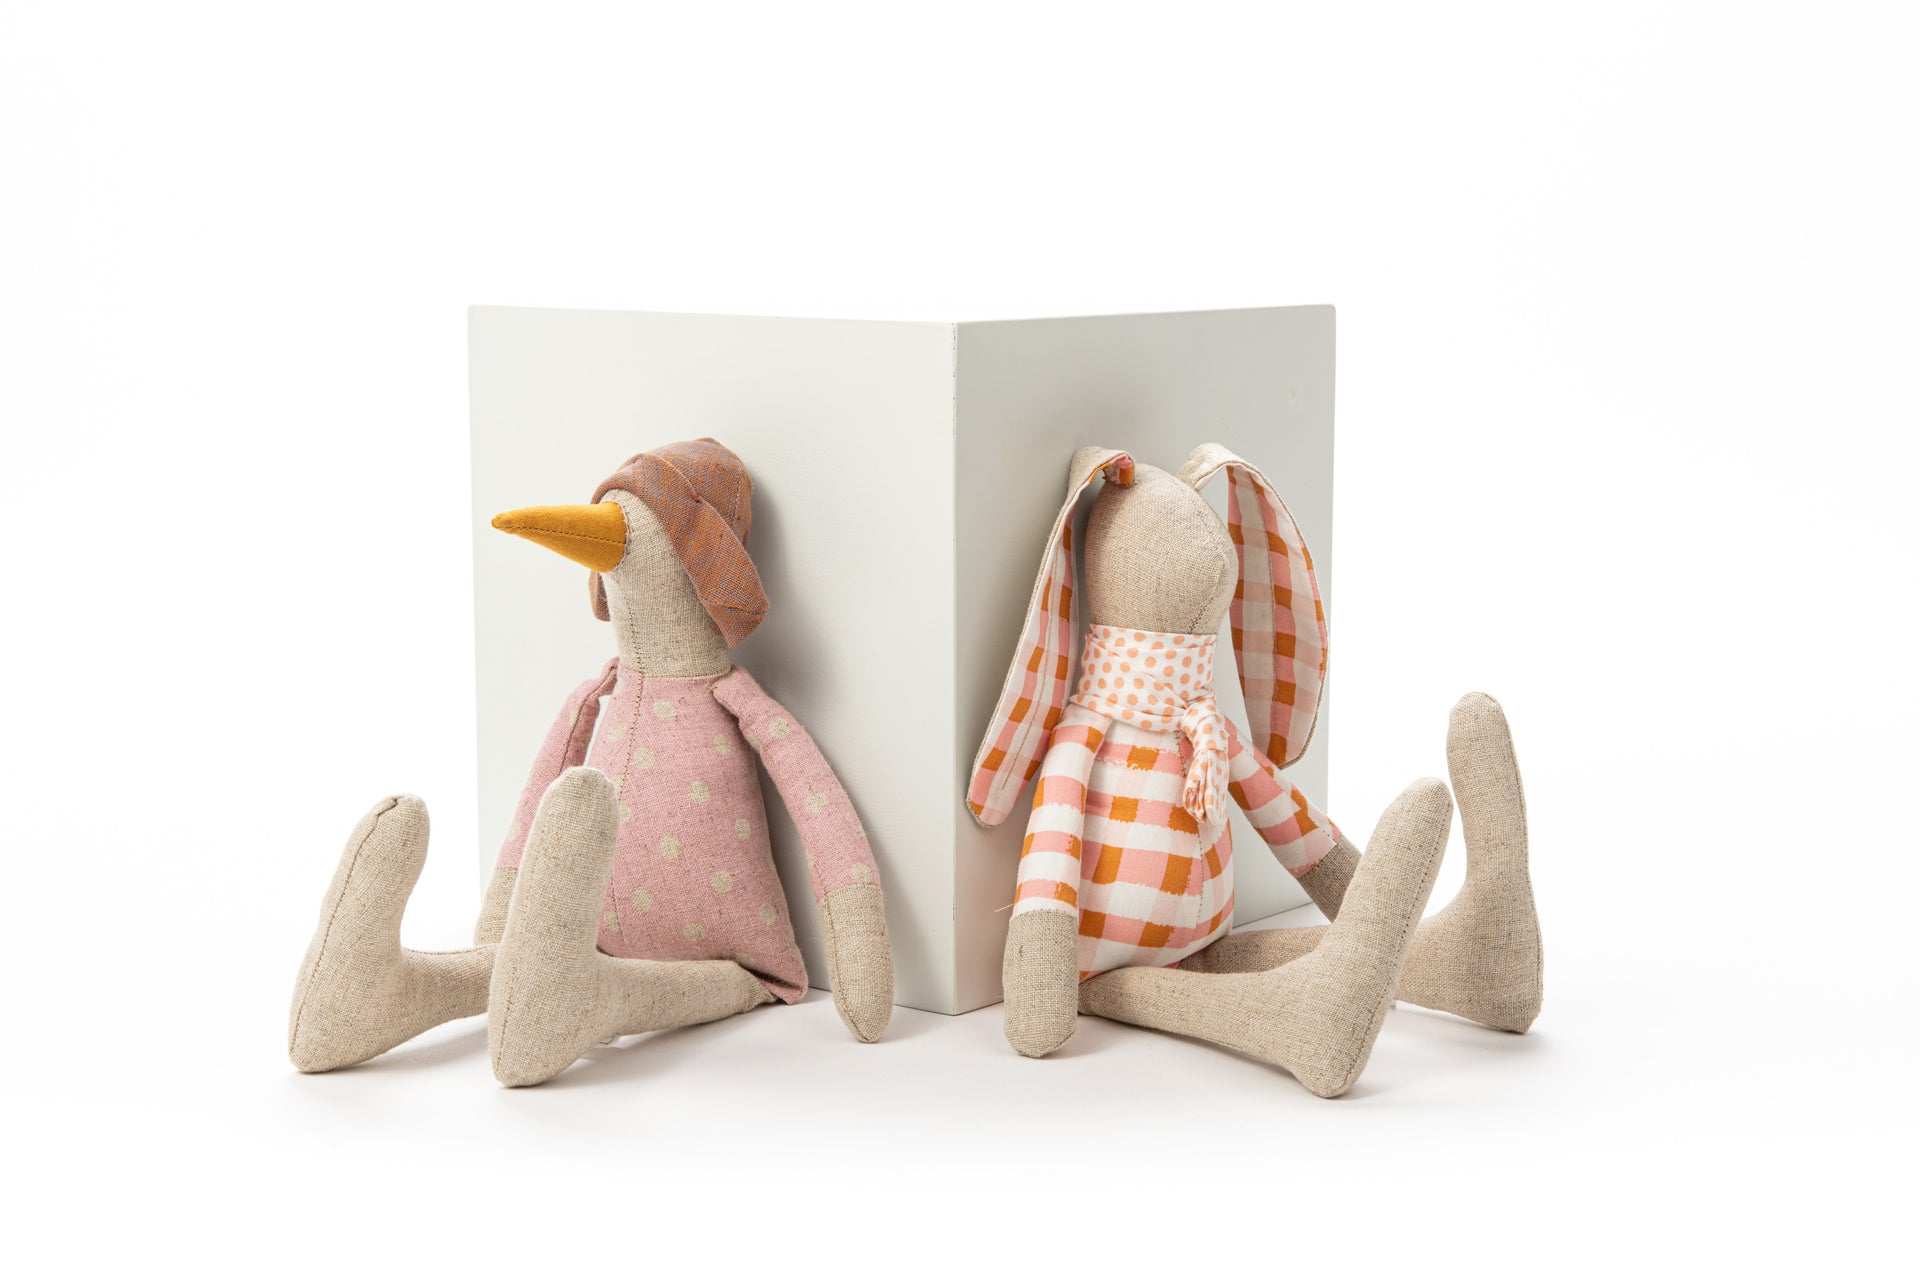 Handmade soft toy Gift for toddler Rabbit doll Linen doll Handmade doll Stuffed toy Plush bunny Stuffed animal Gender free gift Cloth doll